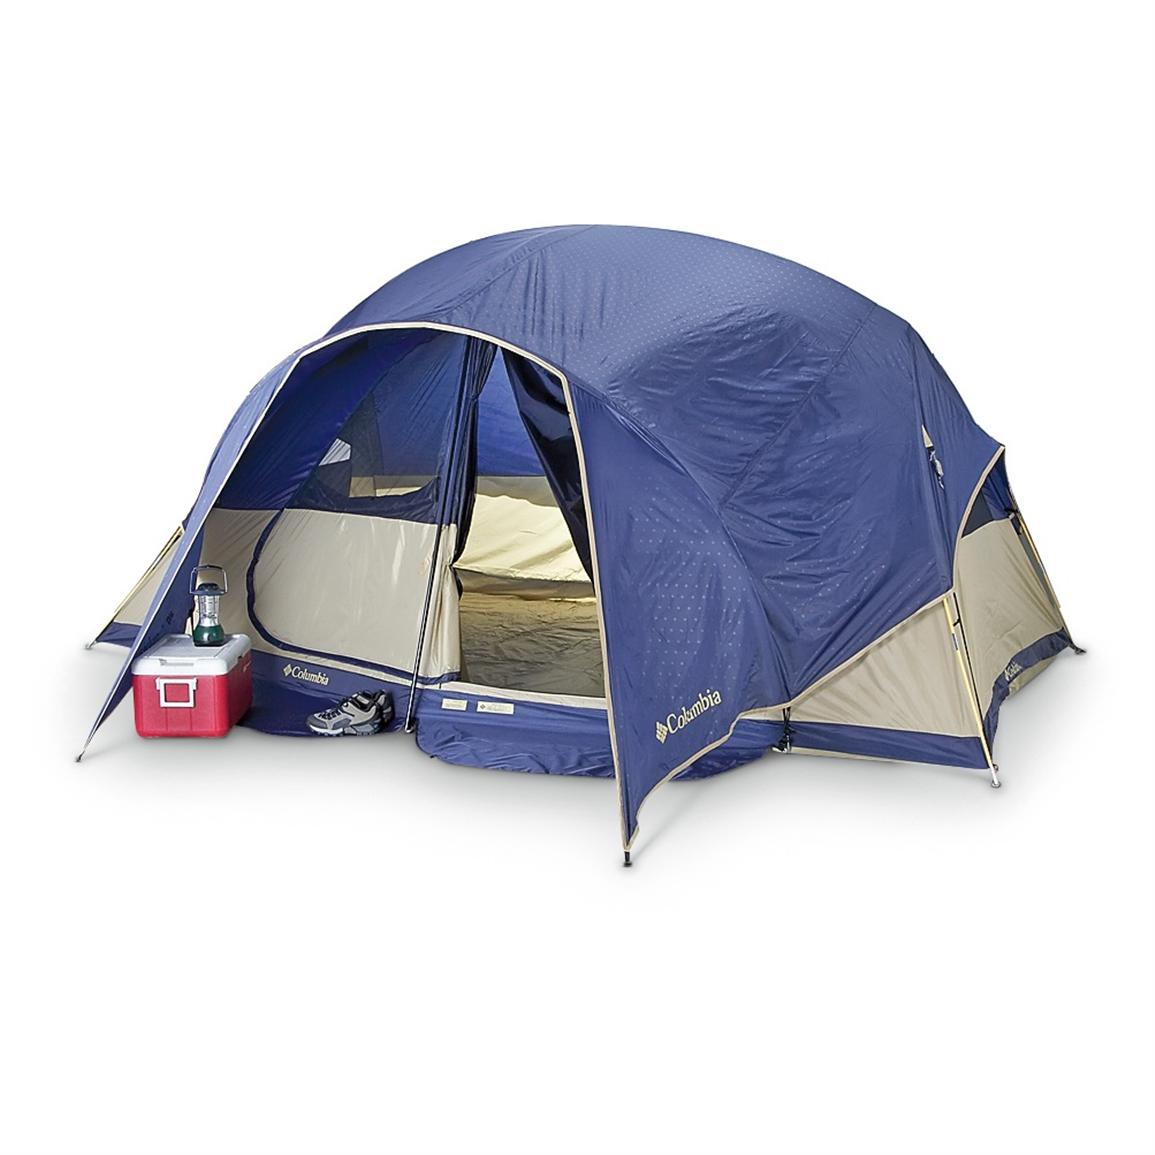 With Rainfly; Rainfly shelters the door and makes a gear vestibule  sc 1 st  Sportsmanu0027s Guide & Columbia® High Trail Family Tent - 202637 Cabin Tents at ...